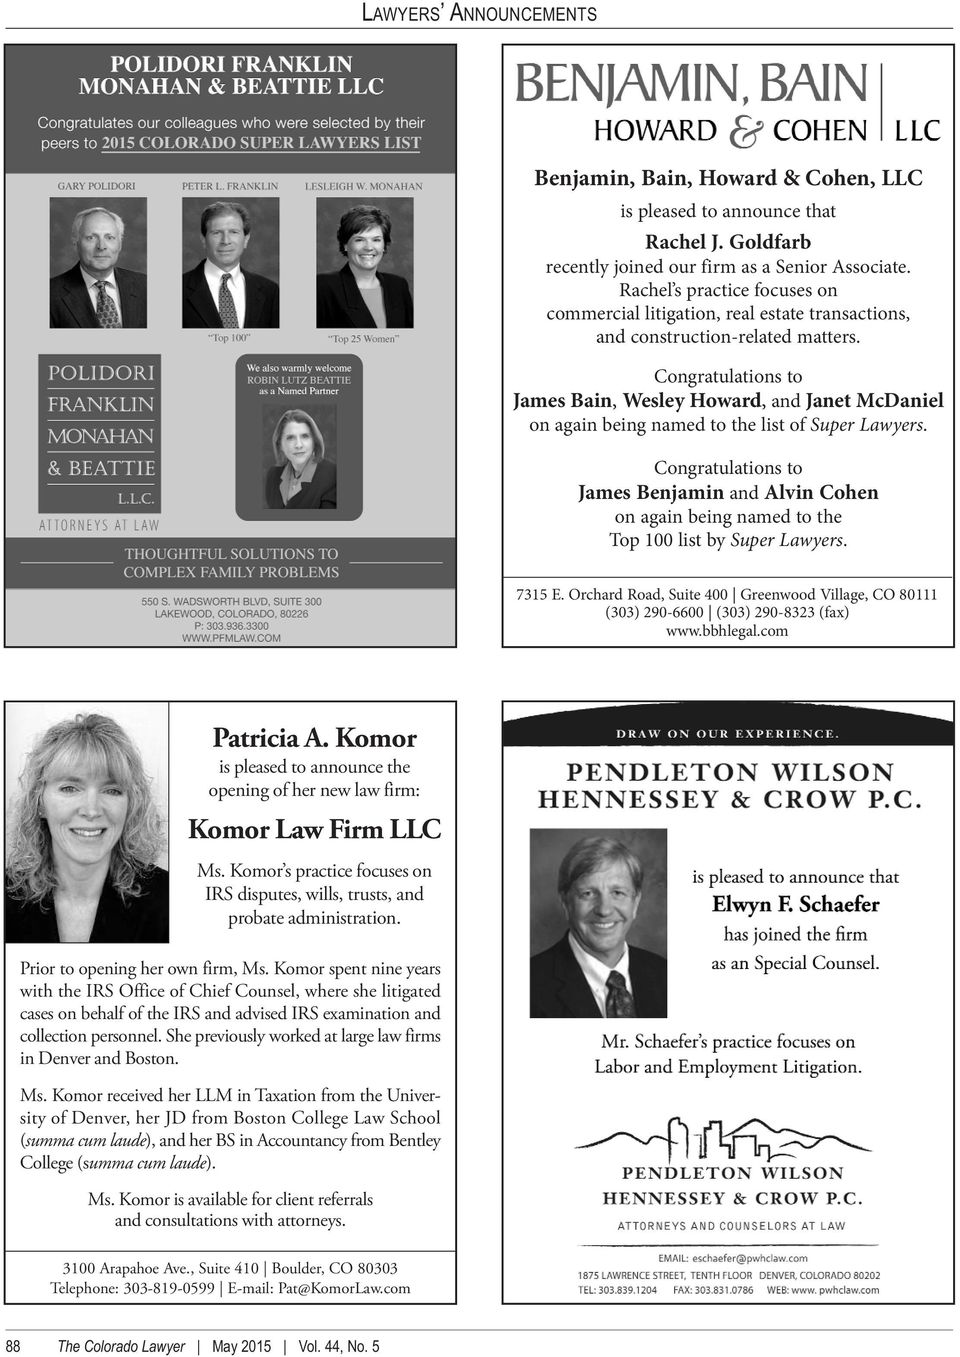 Congratulations to James Bain, Wesley Howard, and Janet McDaniel on again being named to the list of Super Lawyers.